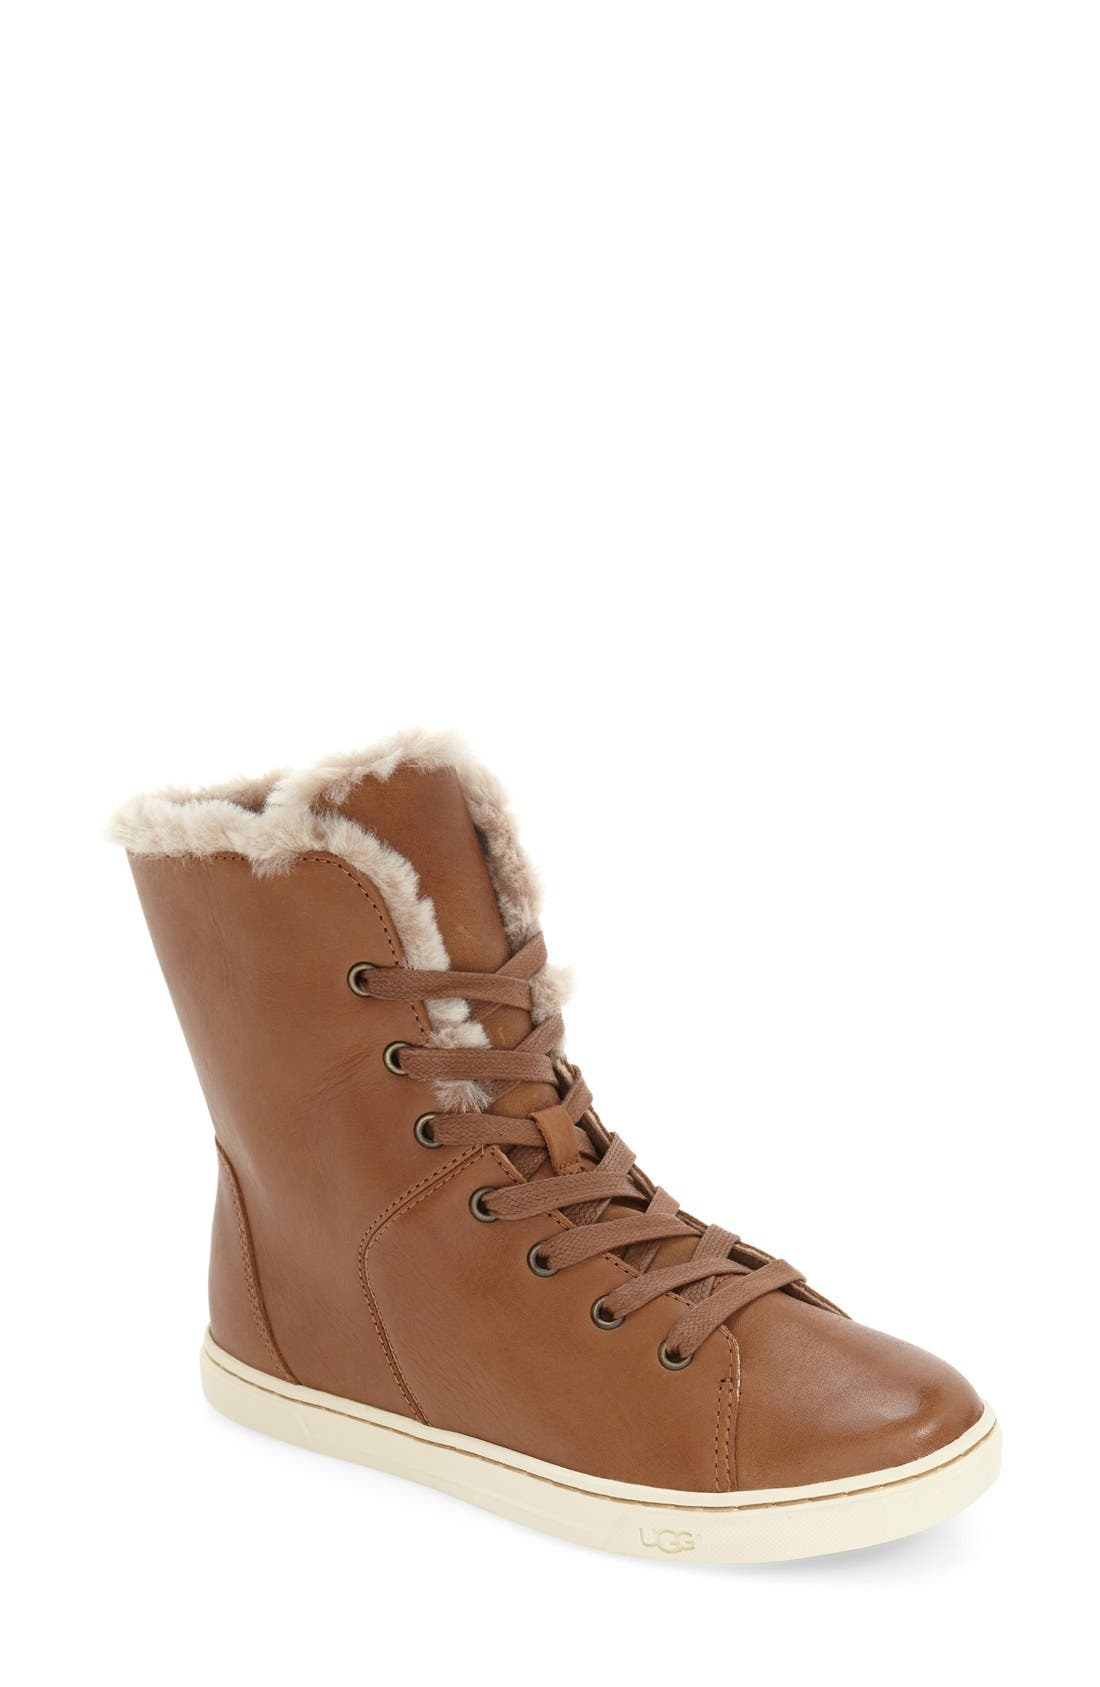 Main Image - UGG® 'Croft Luxe' Genuine Shearling High Top Sneaker (Women)